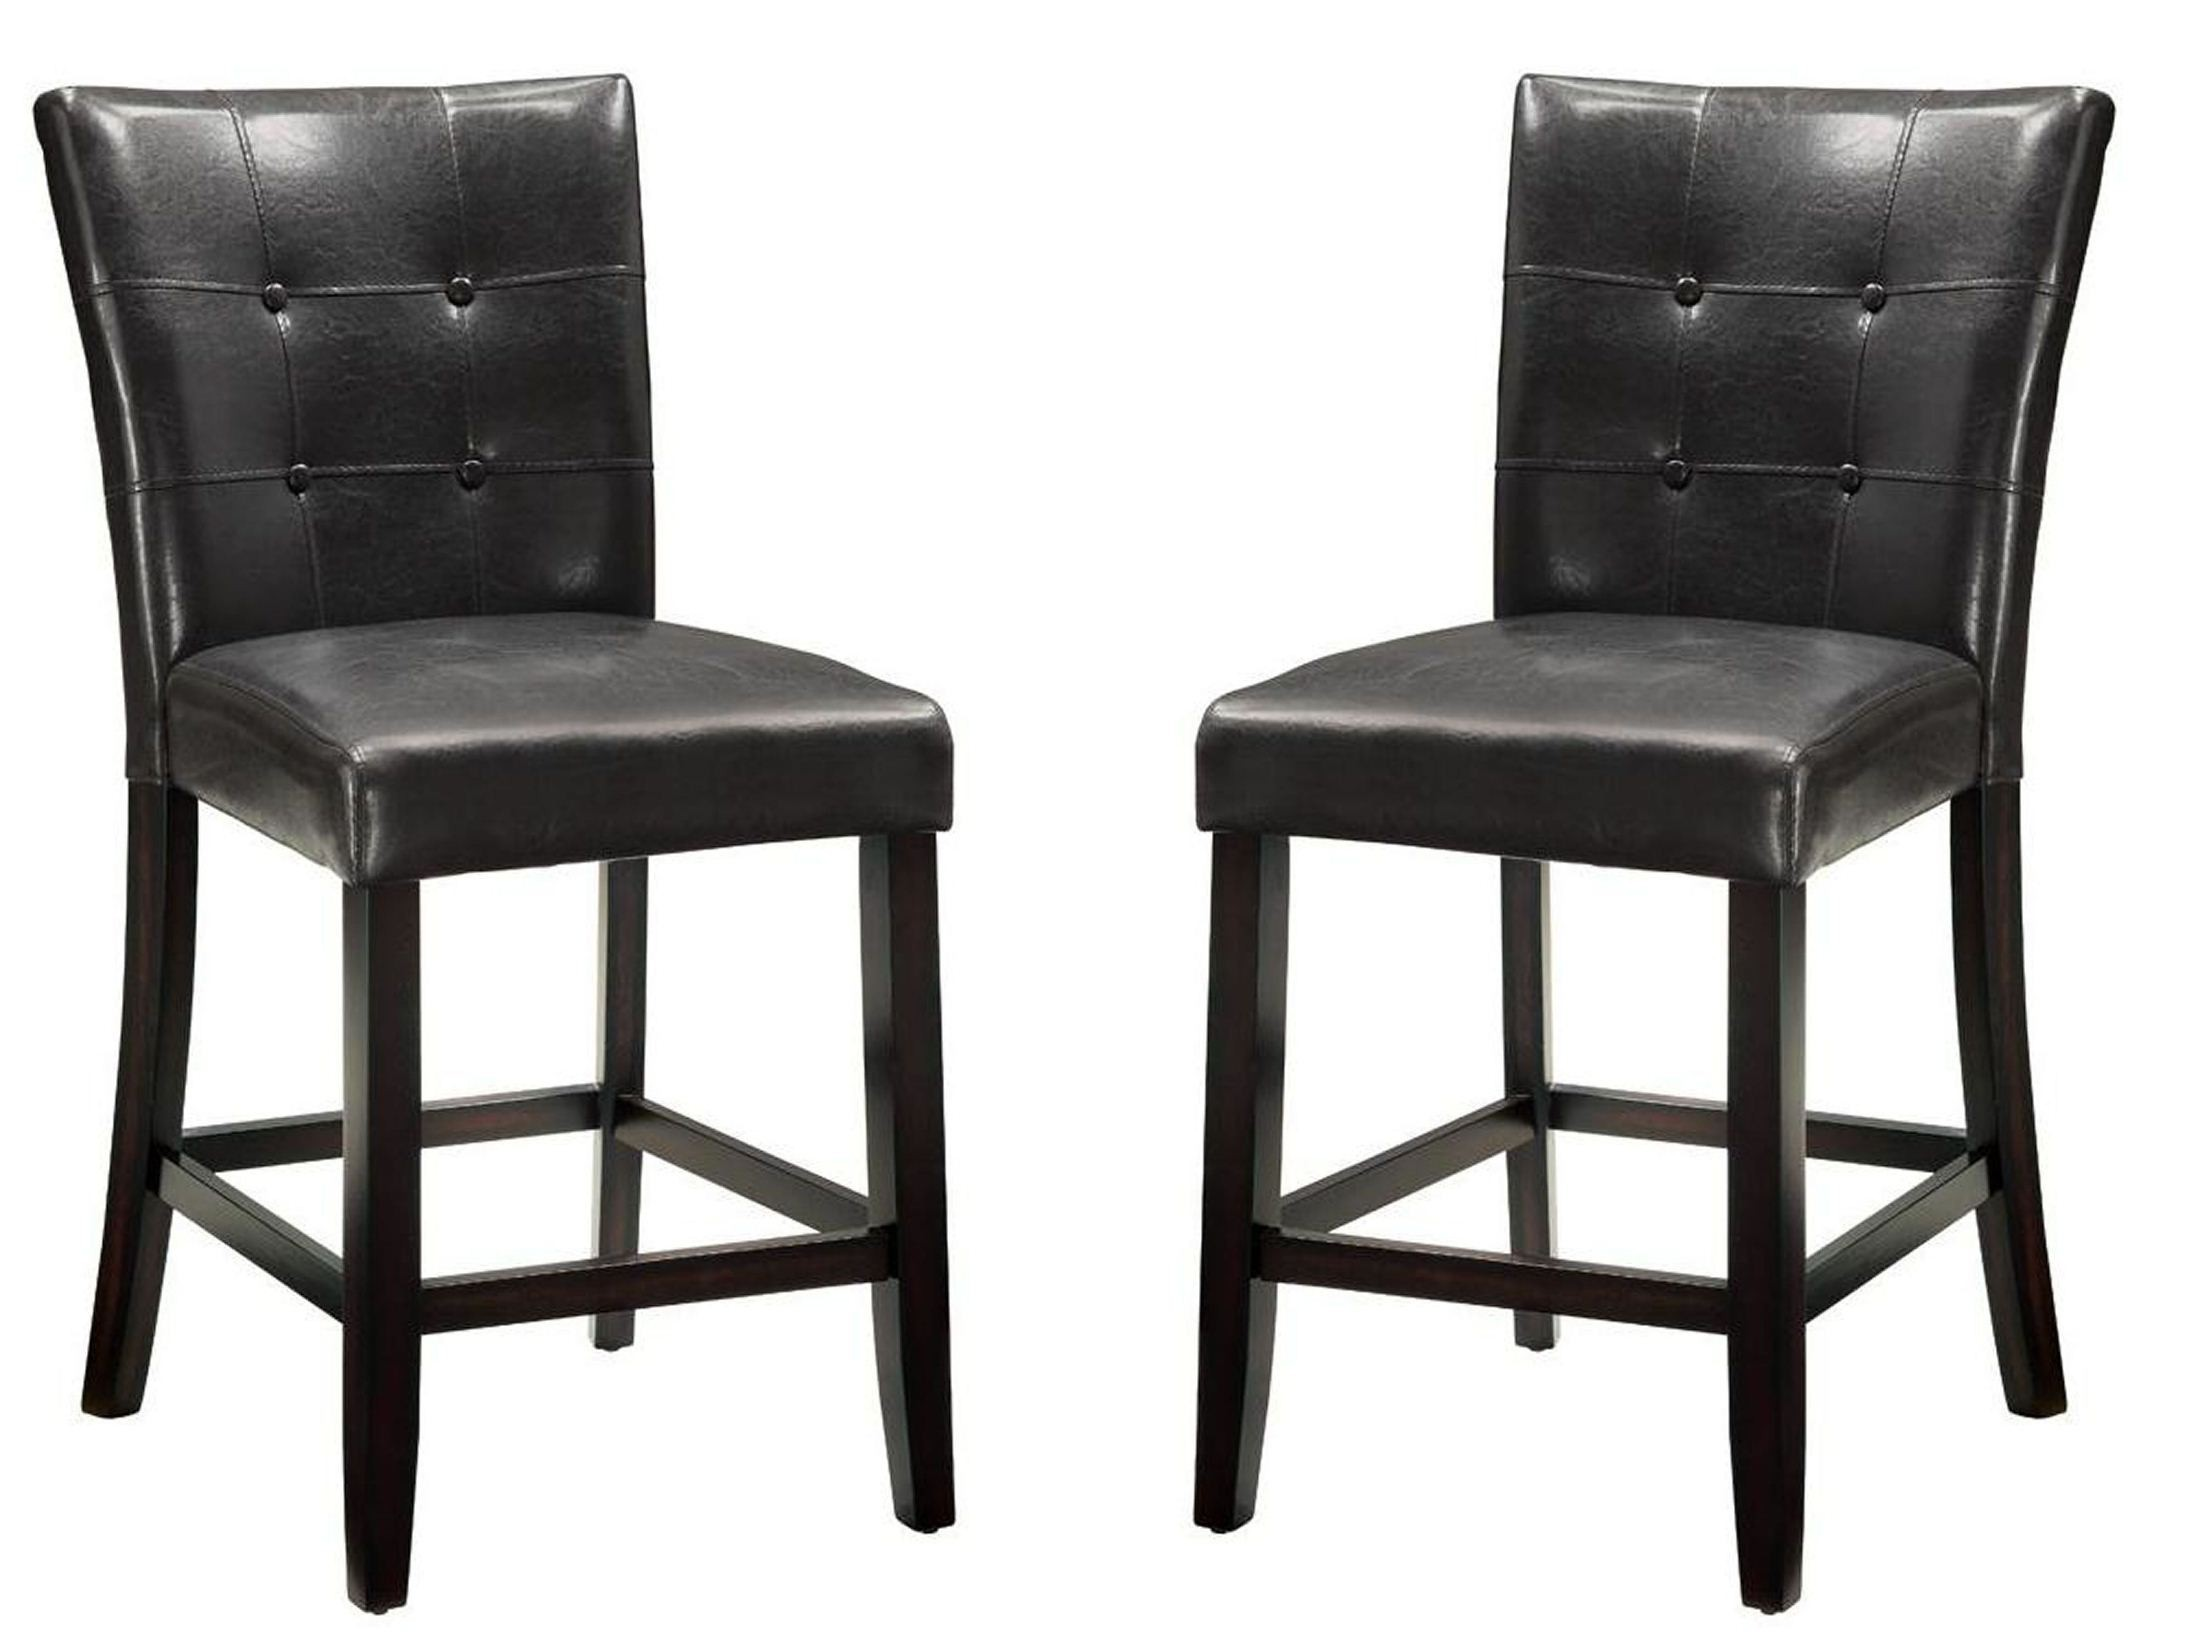 Orlando Counter Height Stool Set of 2 from Coaster 103779  : 103779 s2 from colemanfurniture.com size 2200 x 1645 jpeg 263kB